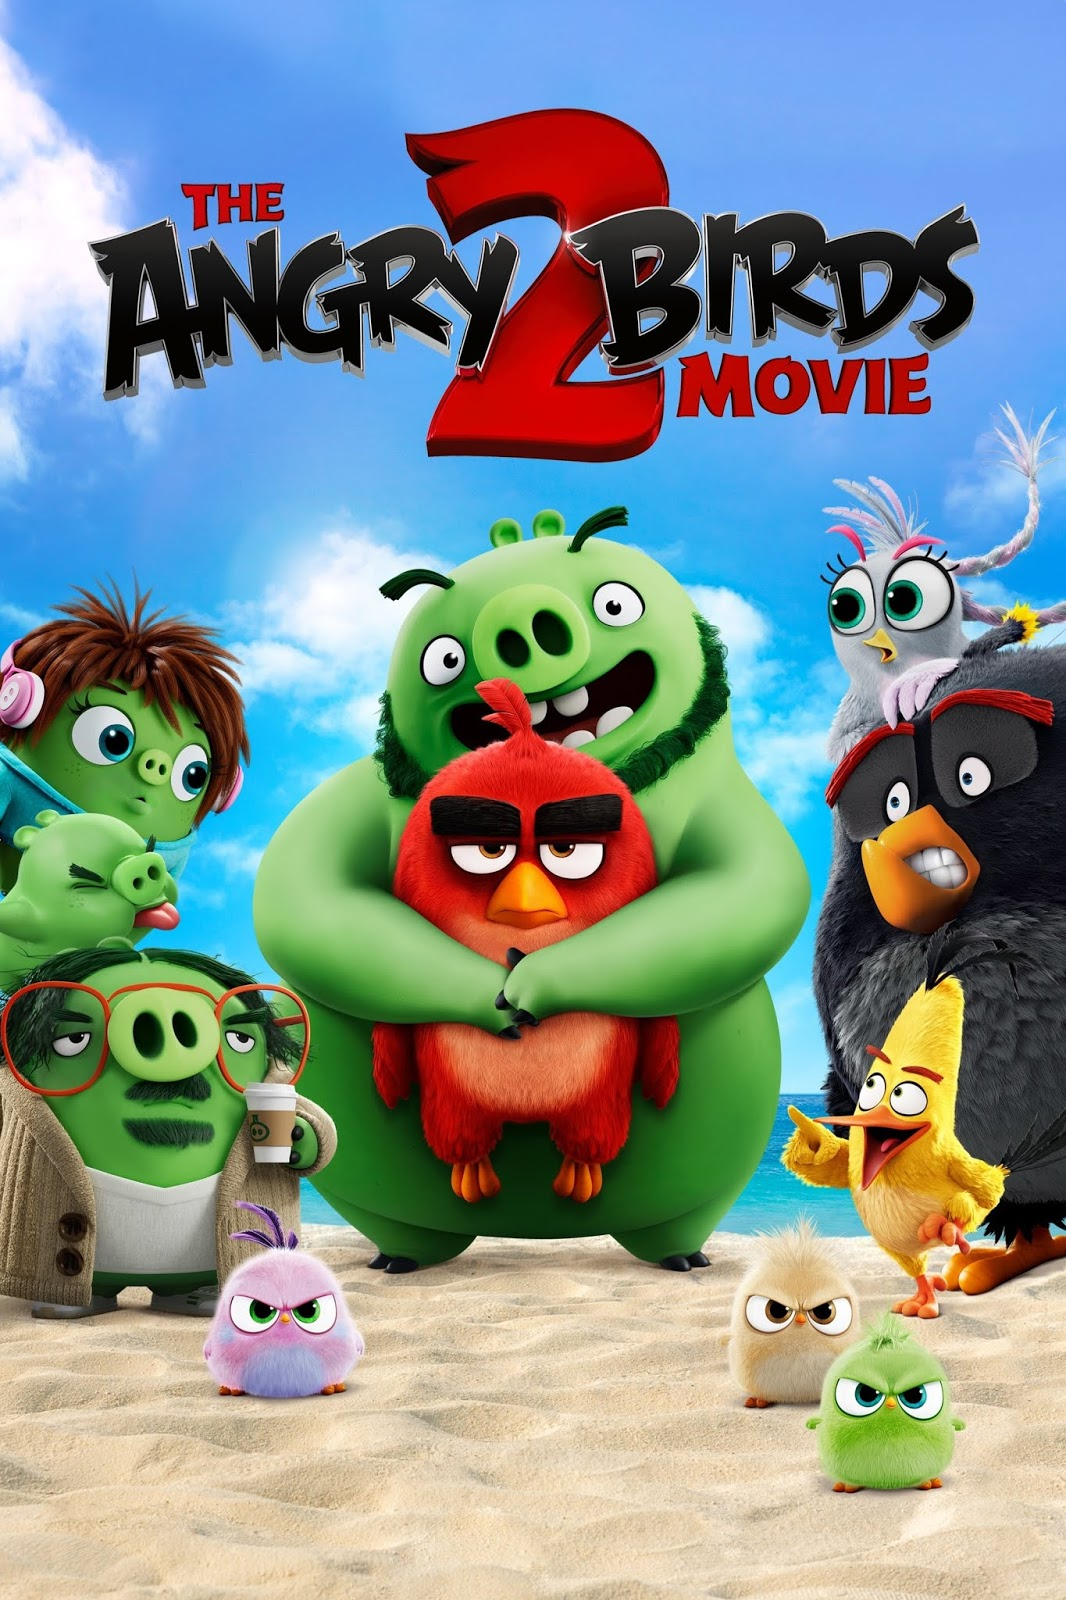 THE ANGRY BIRDS MOVIE 2 (2019) TAMIL DUBBED HD